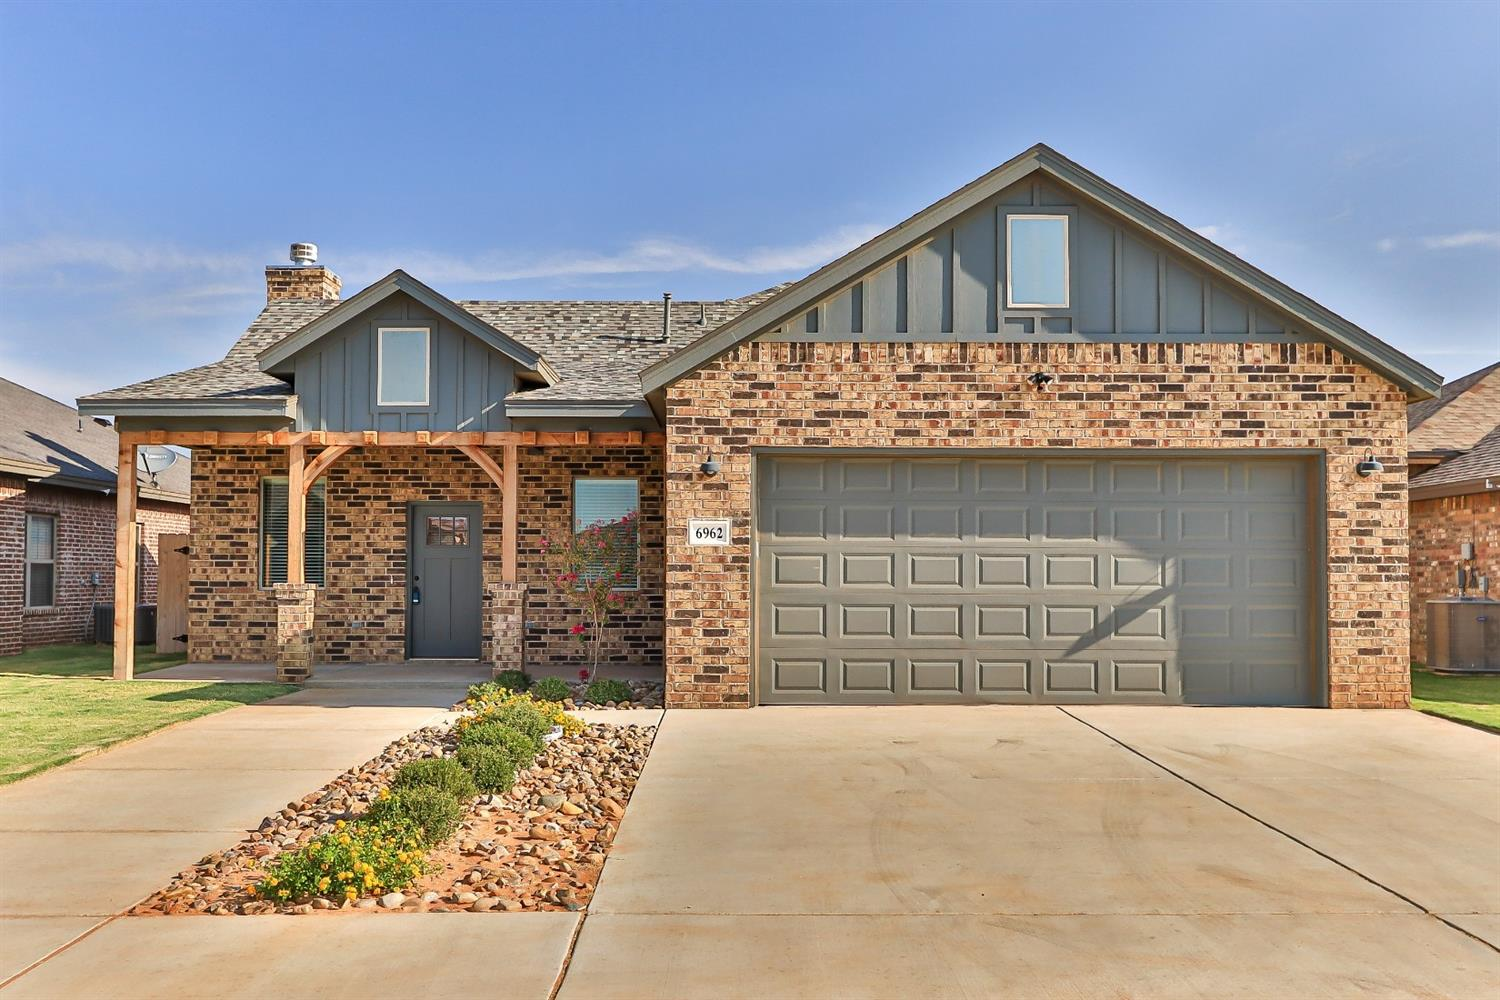 Don't miss this new construction built by LS Kingdom Homes! This incredible home features 3 bedrooms, 2 bathrooms, an office, and a play area. The open concept is perfect for entertaining, and features exquisite details. The isolated master suite features a spacious bathroom with over sized free standing tub, and a huge master closet!